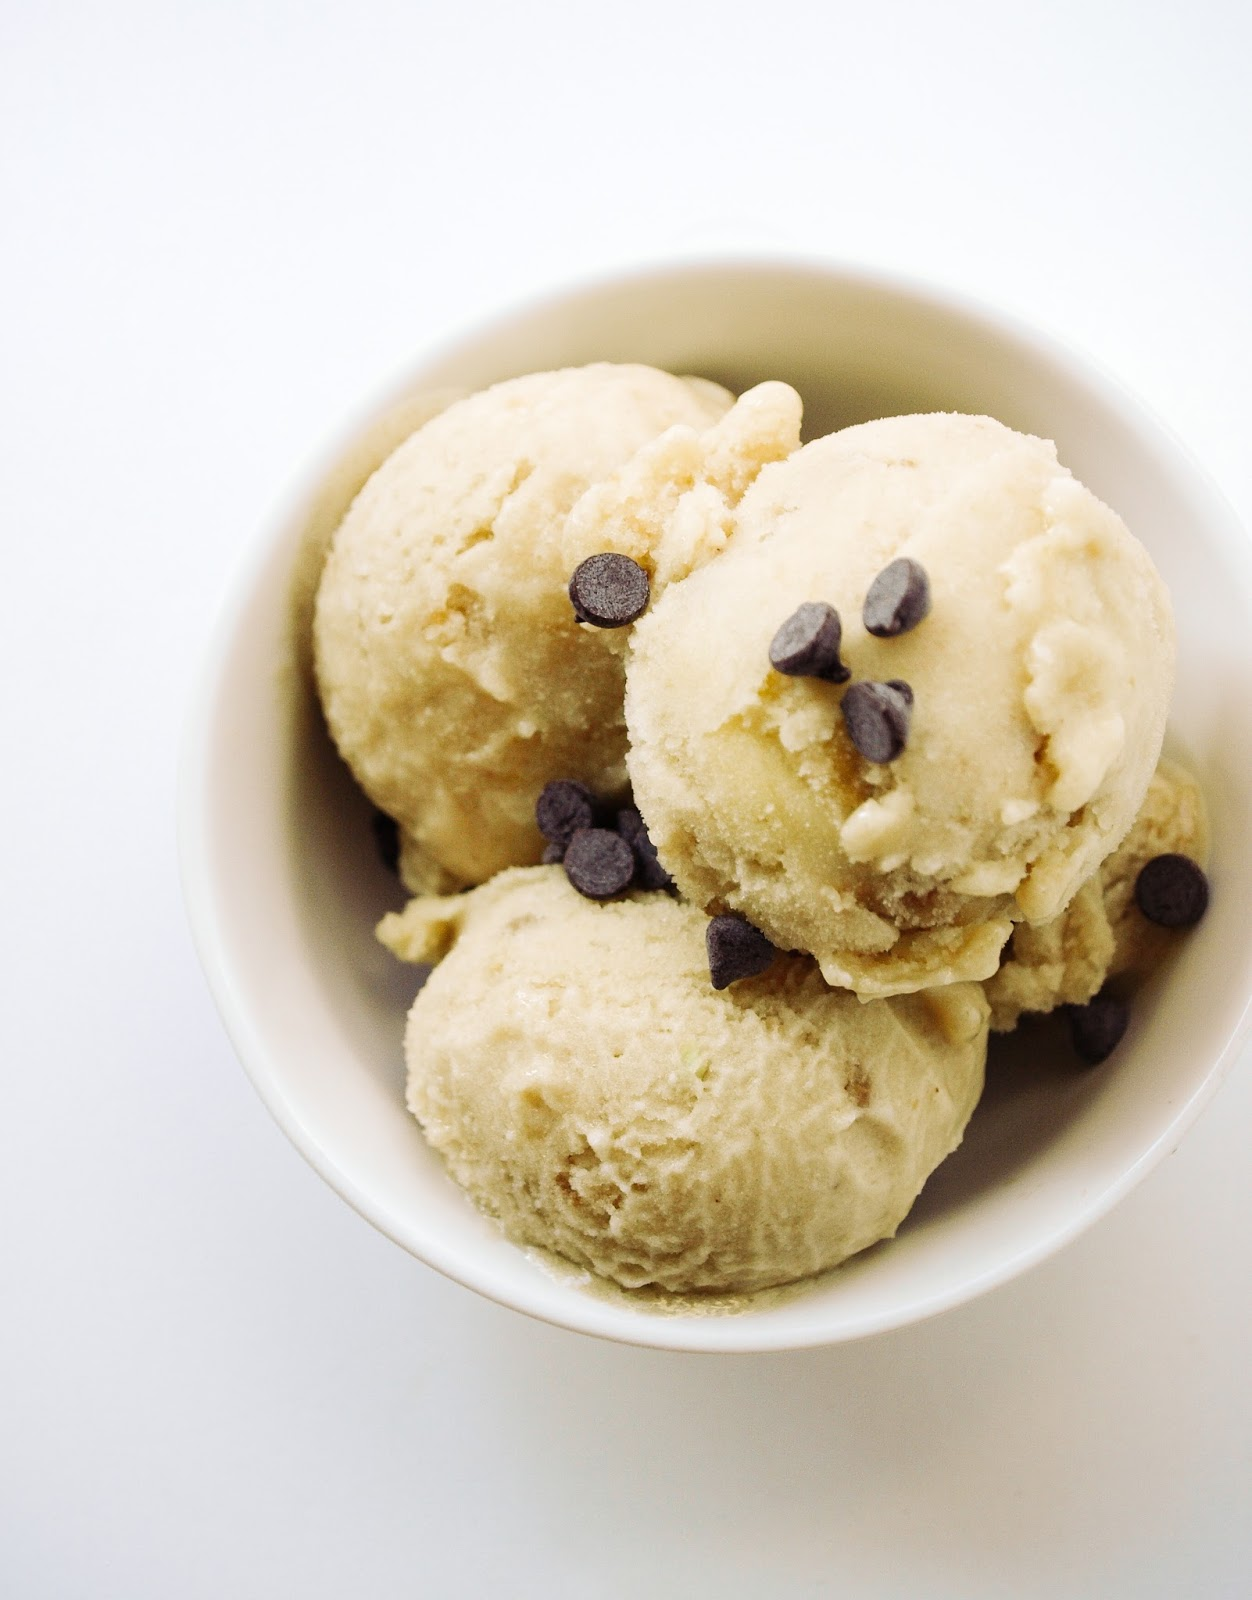 THE SIMPLE VEGANISTA: BANANA COCONUT GINGER ICE CREAM